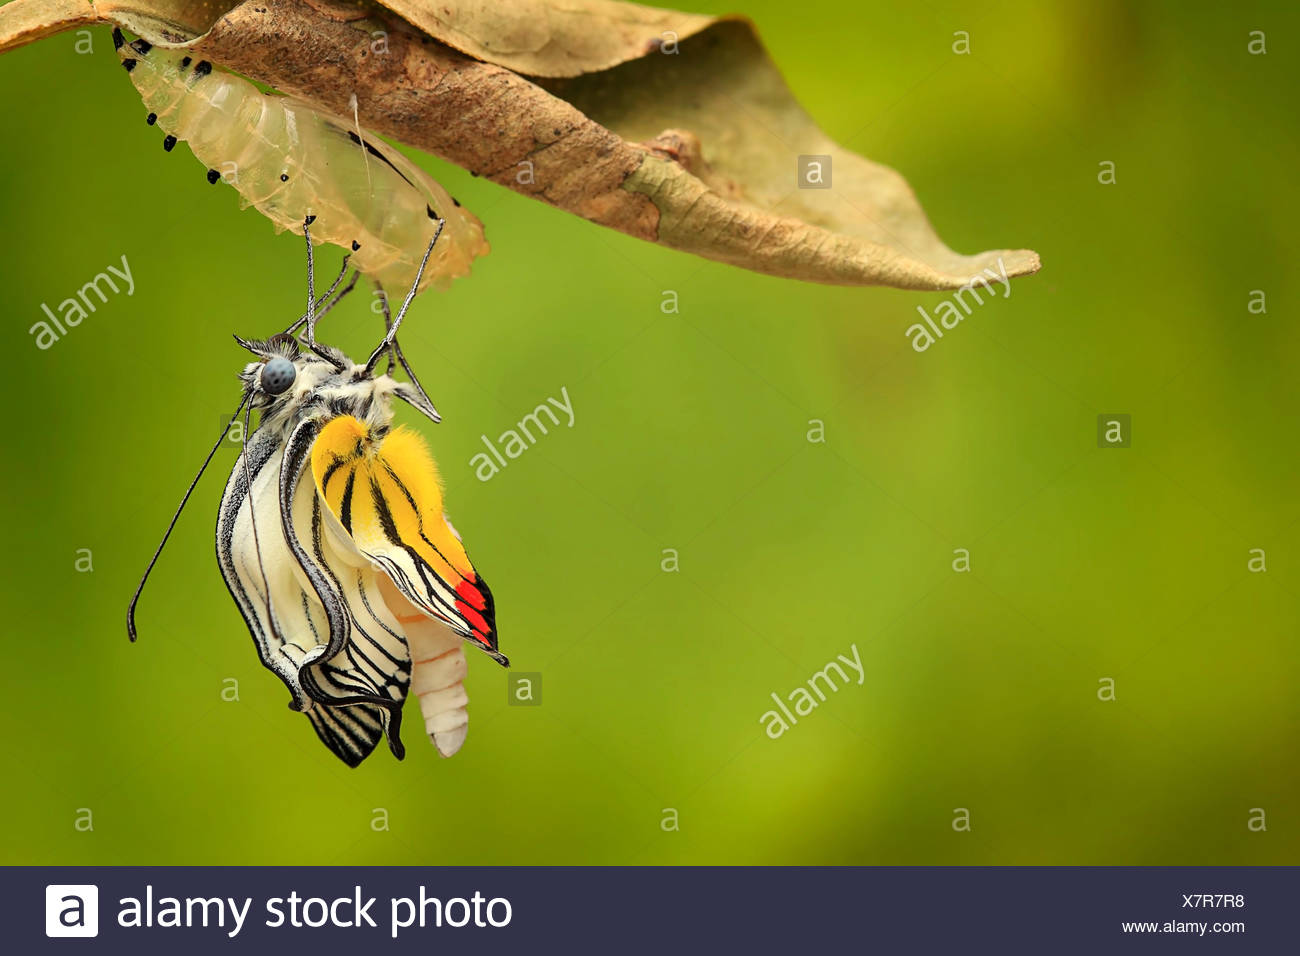 Indonesia, Jember, Butterfly (delis hyparete) emerging from cocoon - Stock Image